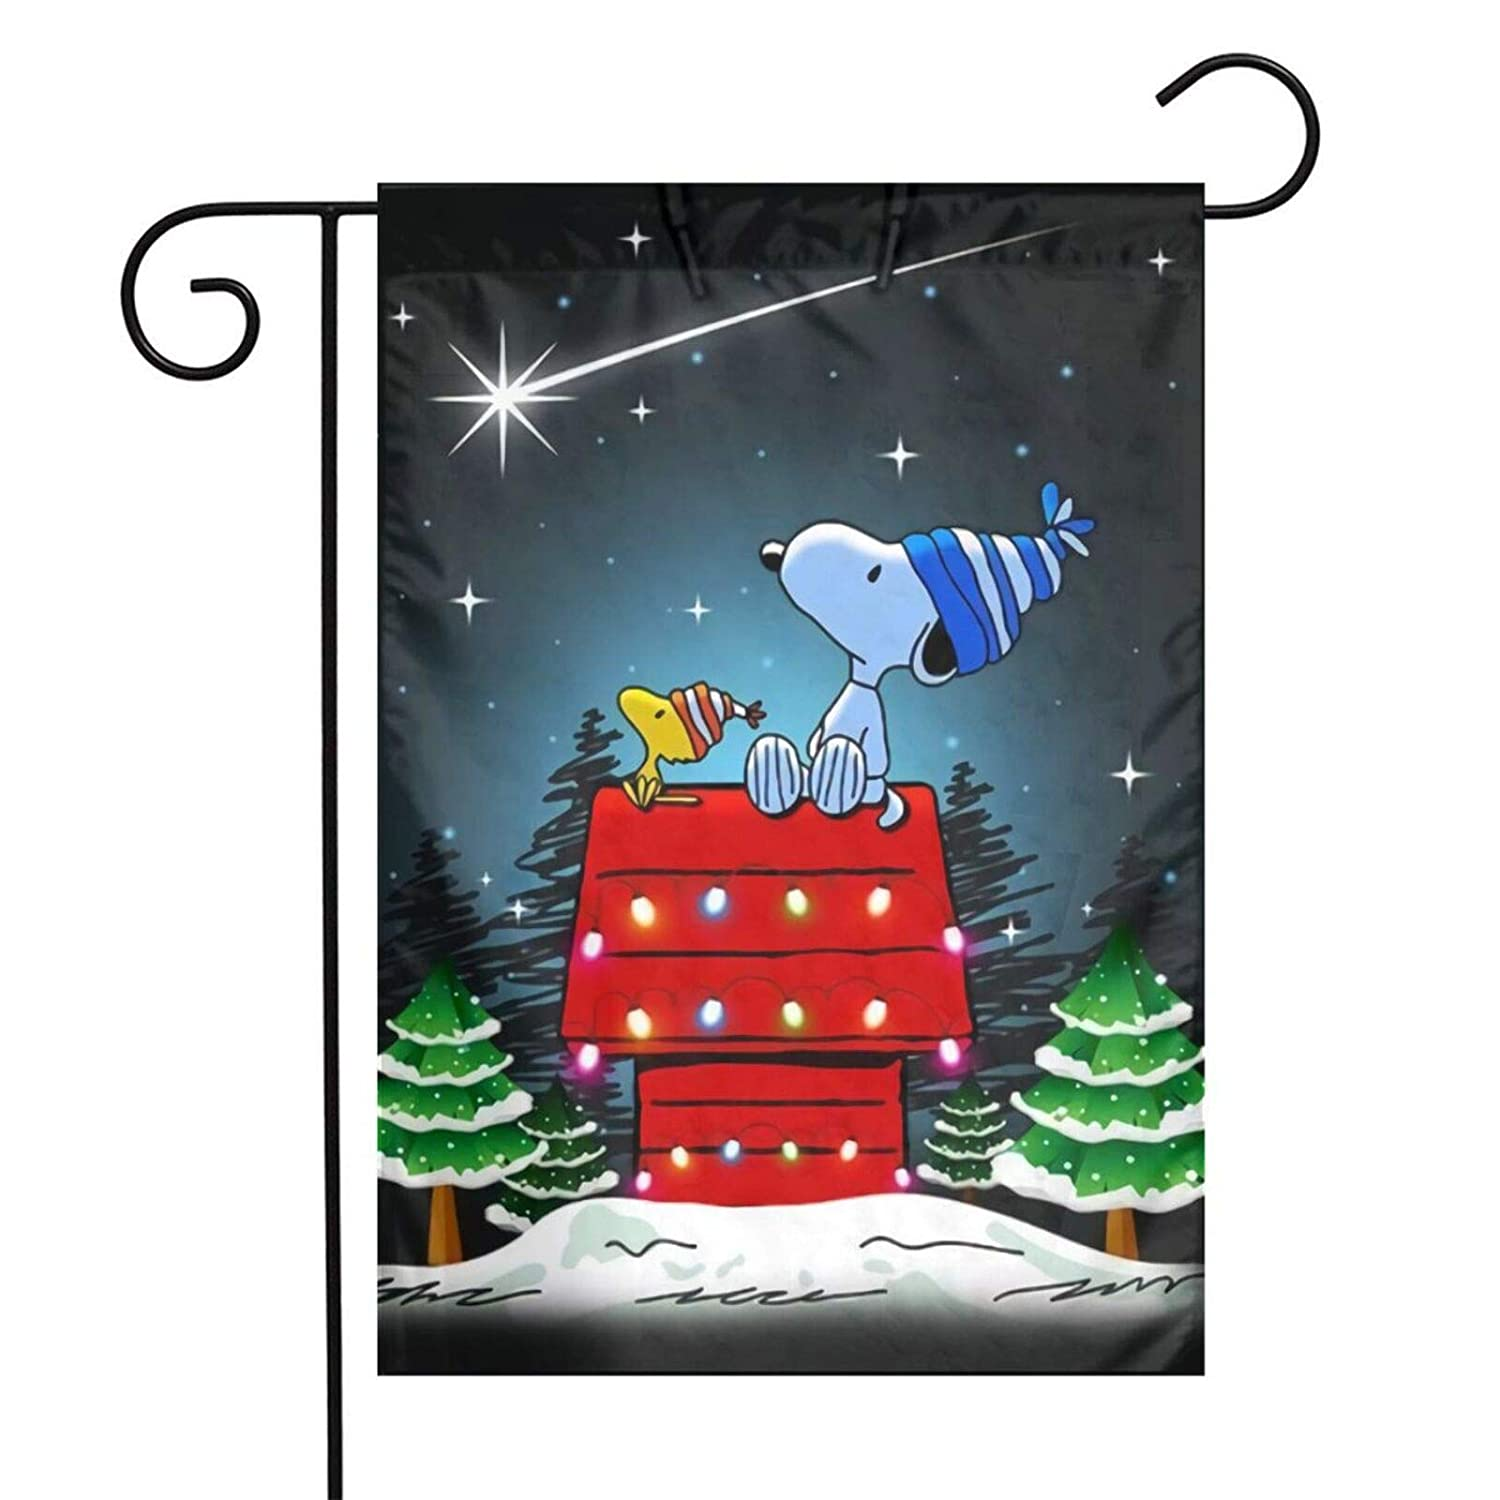 Garden Flag Yard Decor - Custom Snoopy And Woodstock Christmas Lawn Flag 12 X 18 Inches